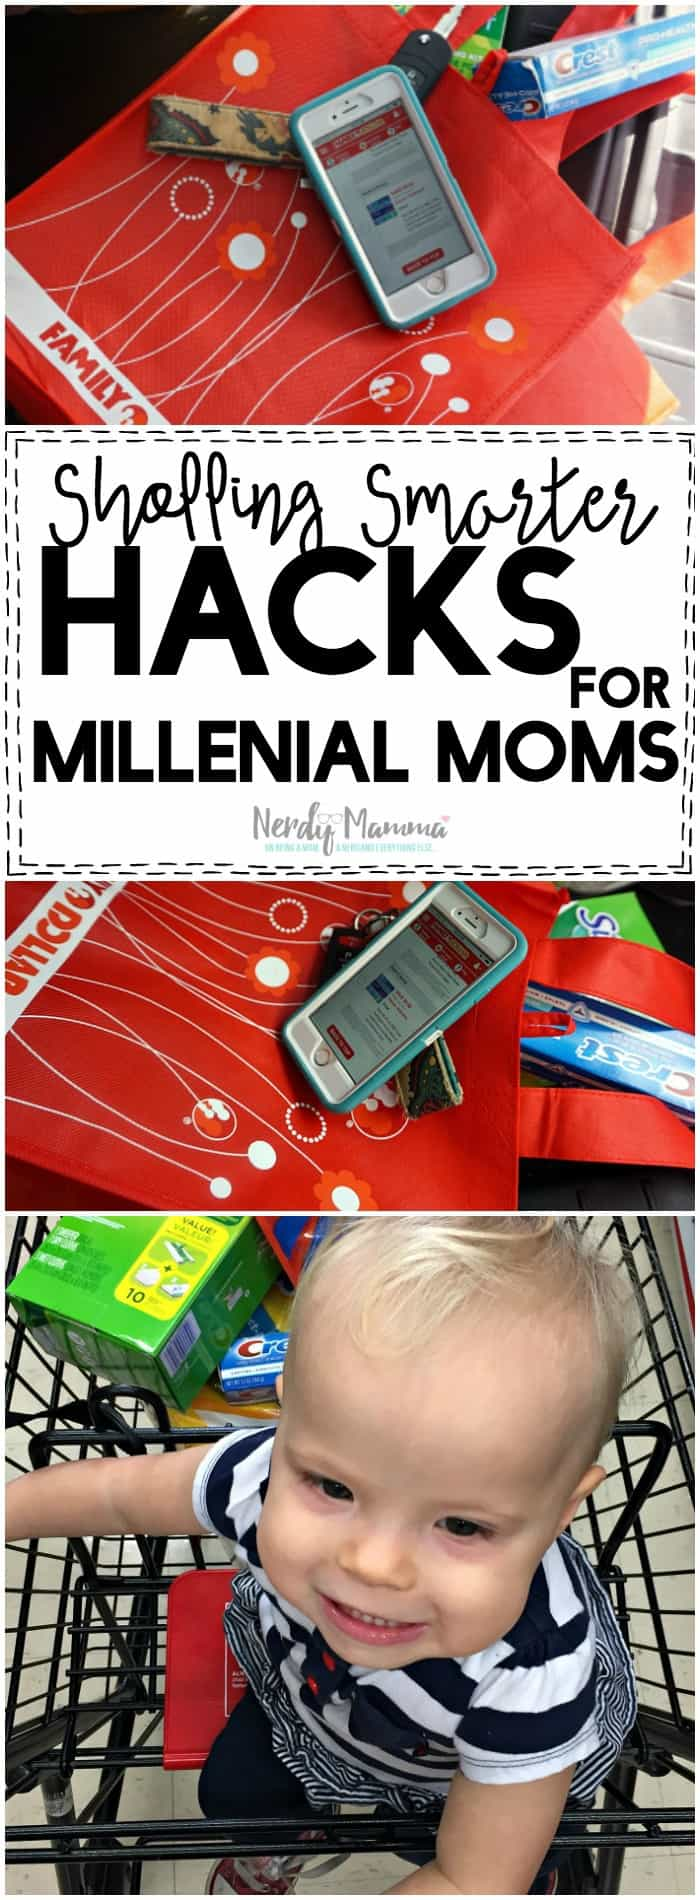 I absolutely love these Shopping Smarter Hacks for Millenial moms! So simple!